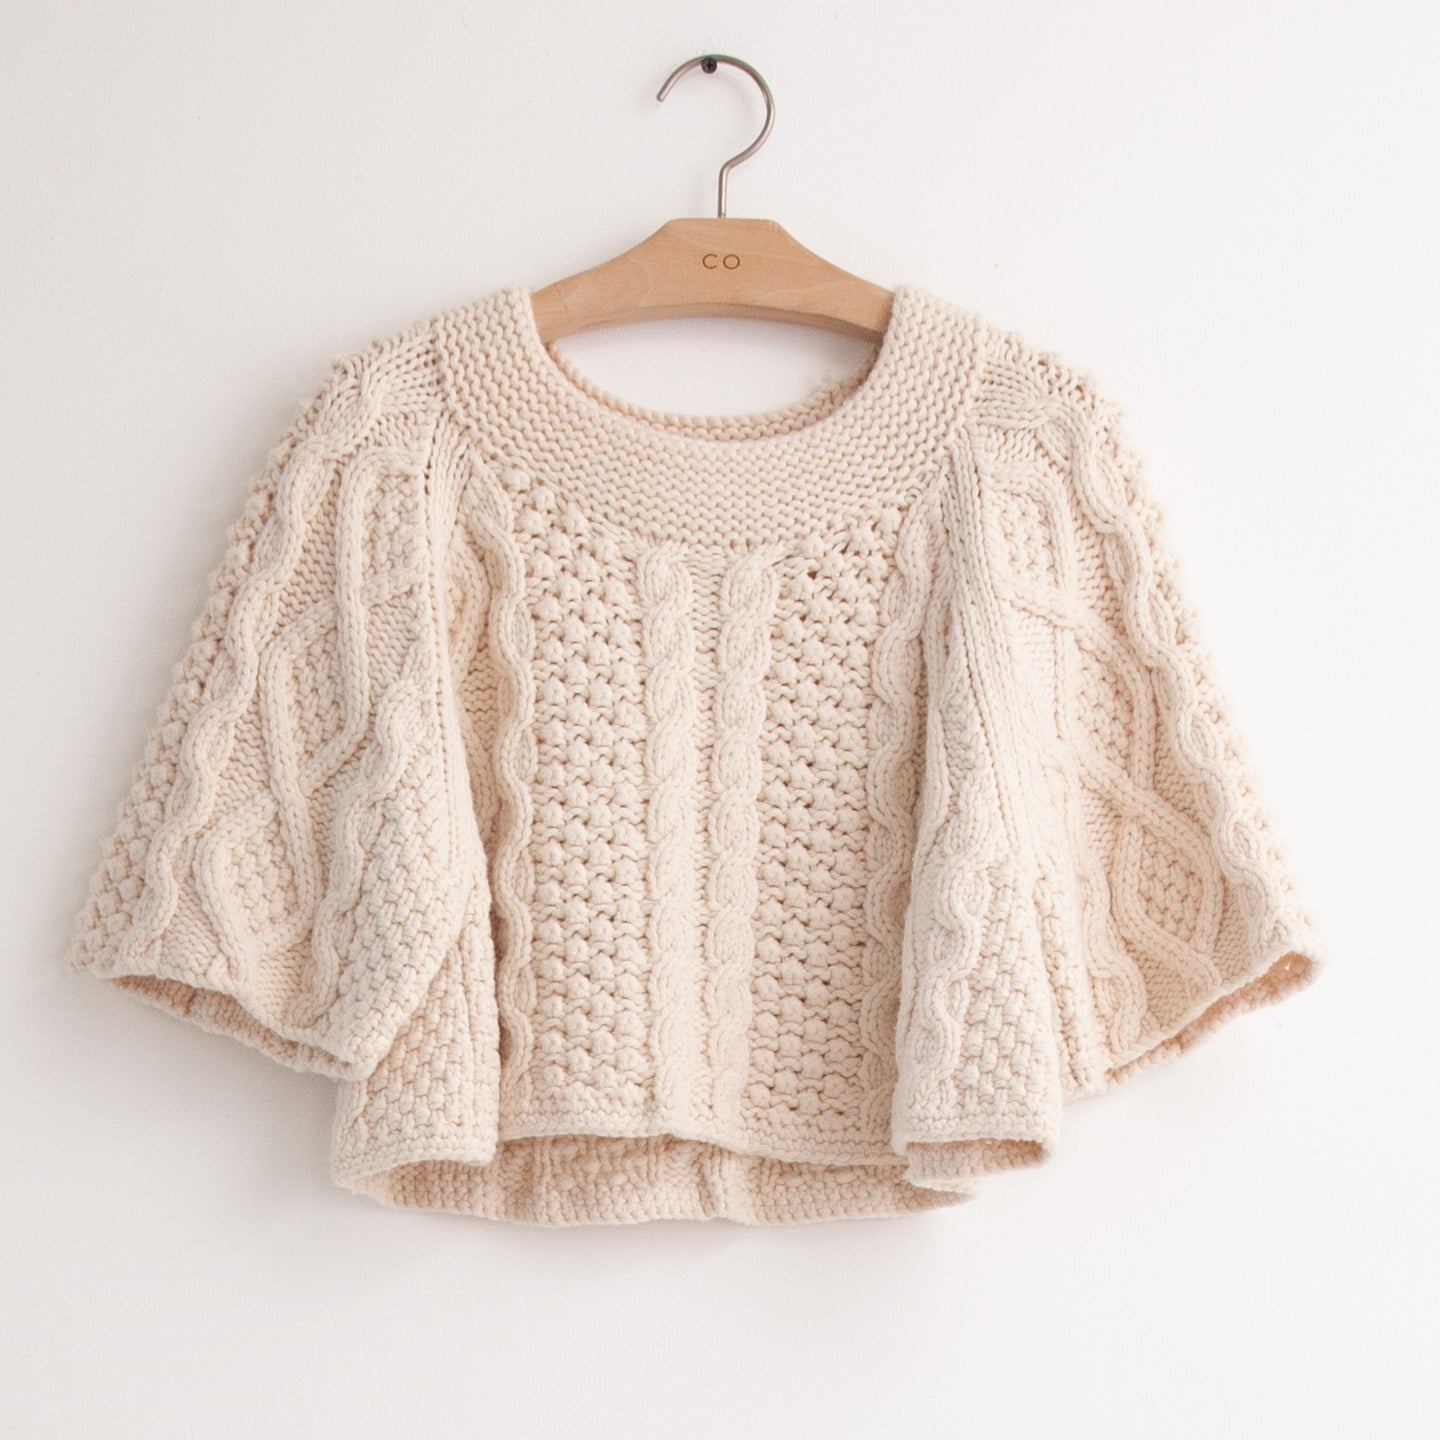 CO - Cable knit cropped pull over in ivory cashmere